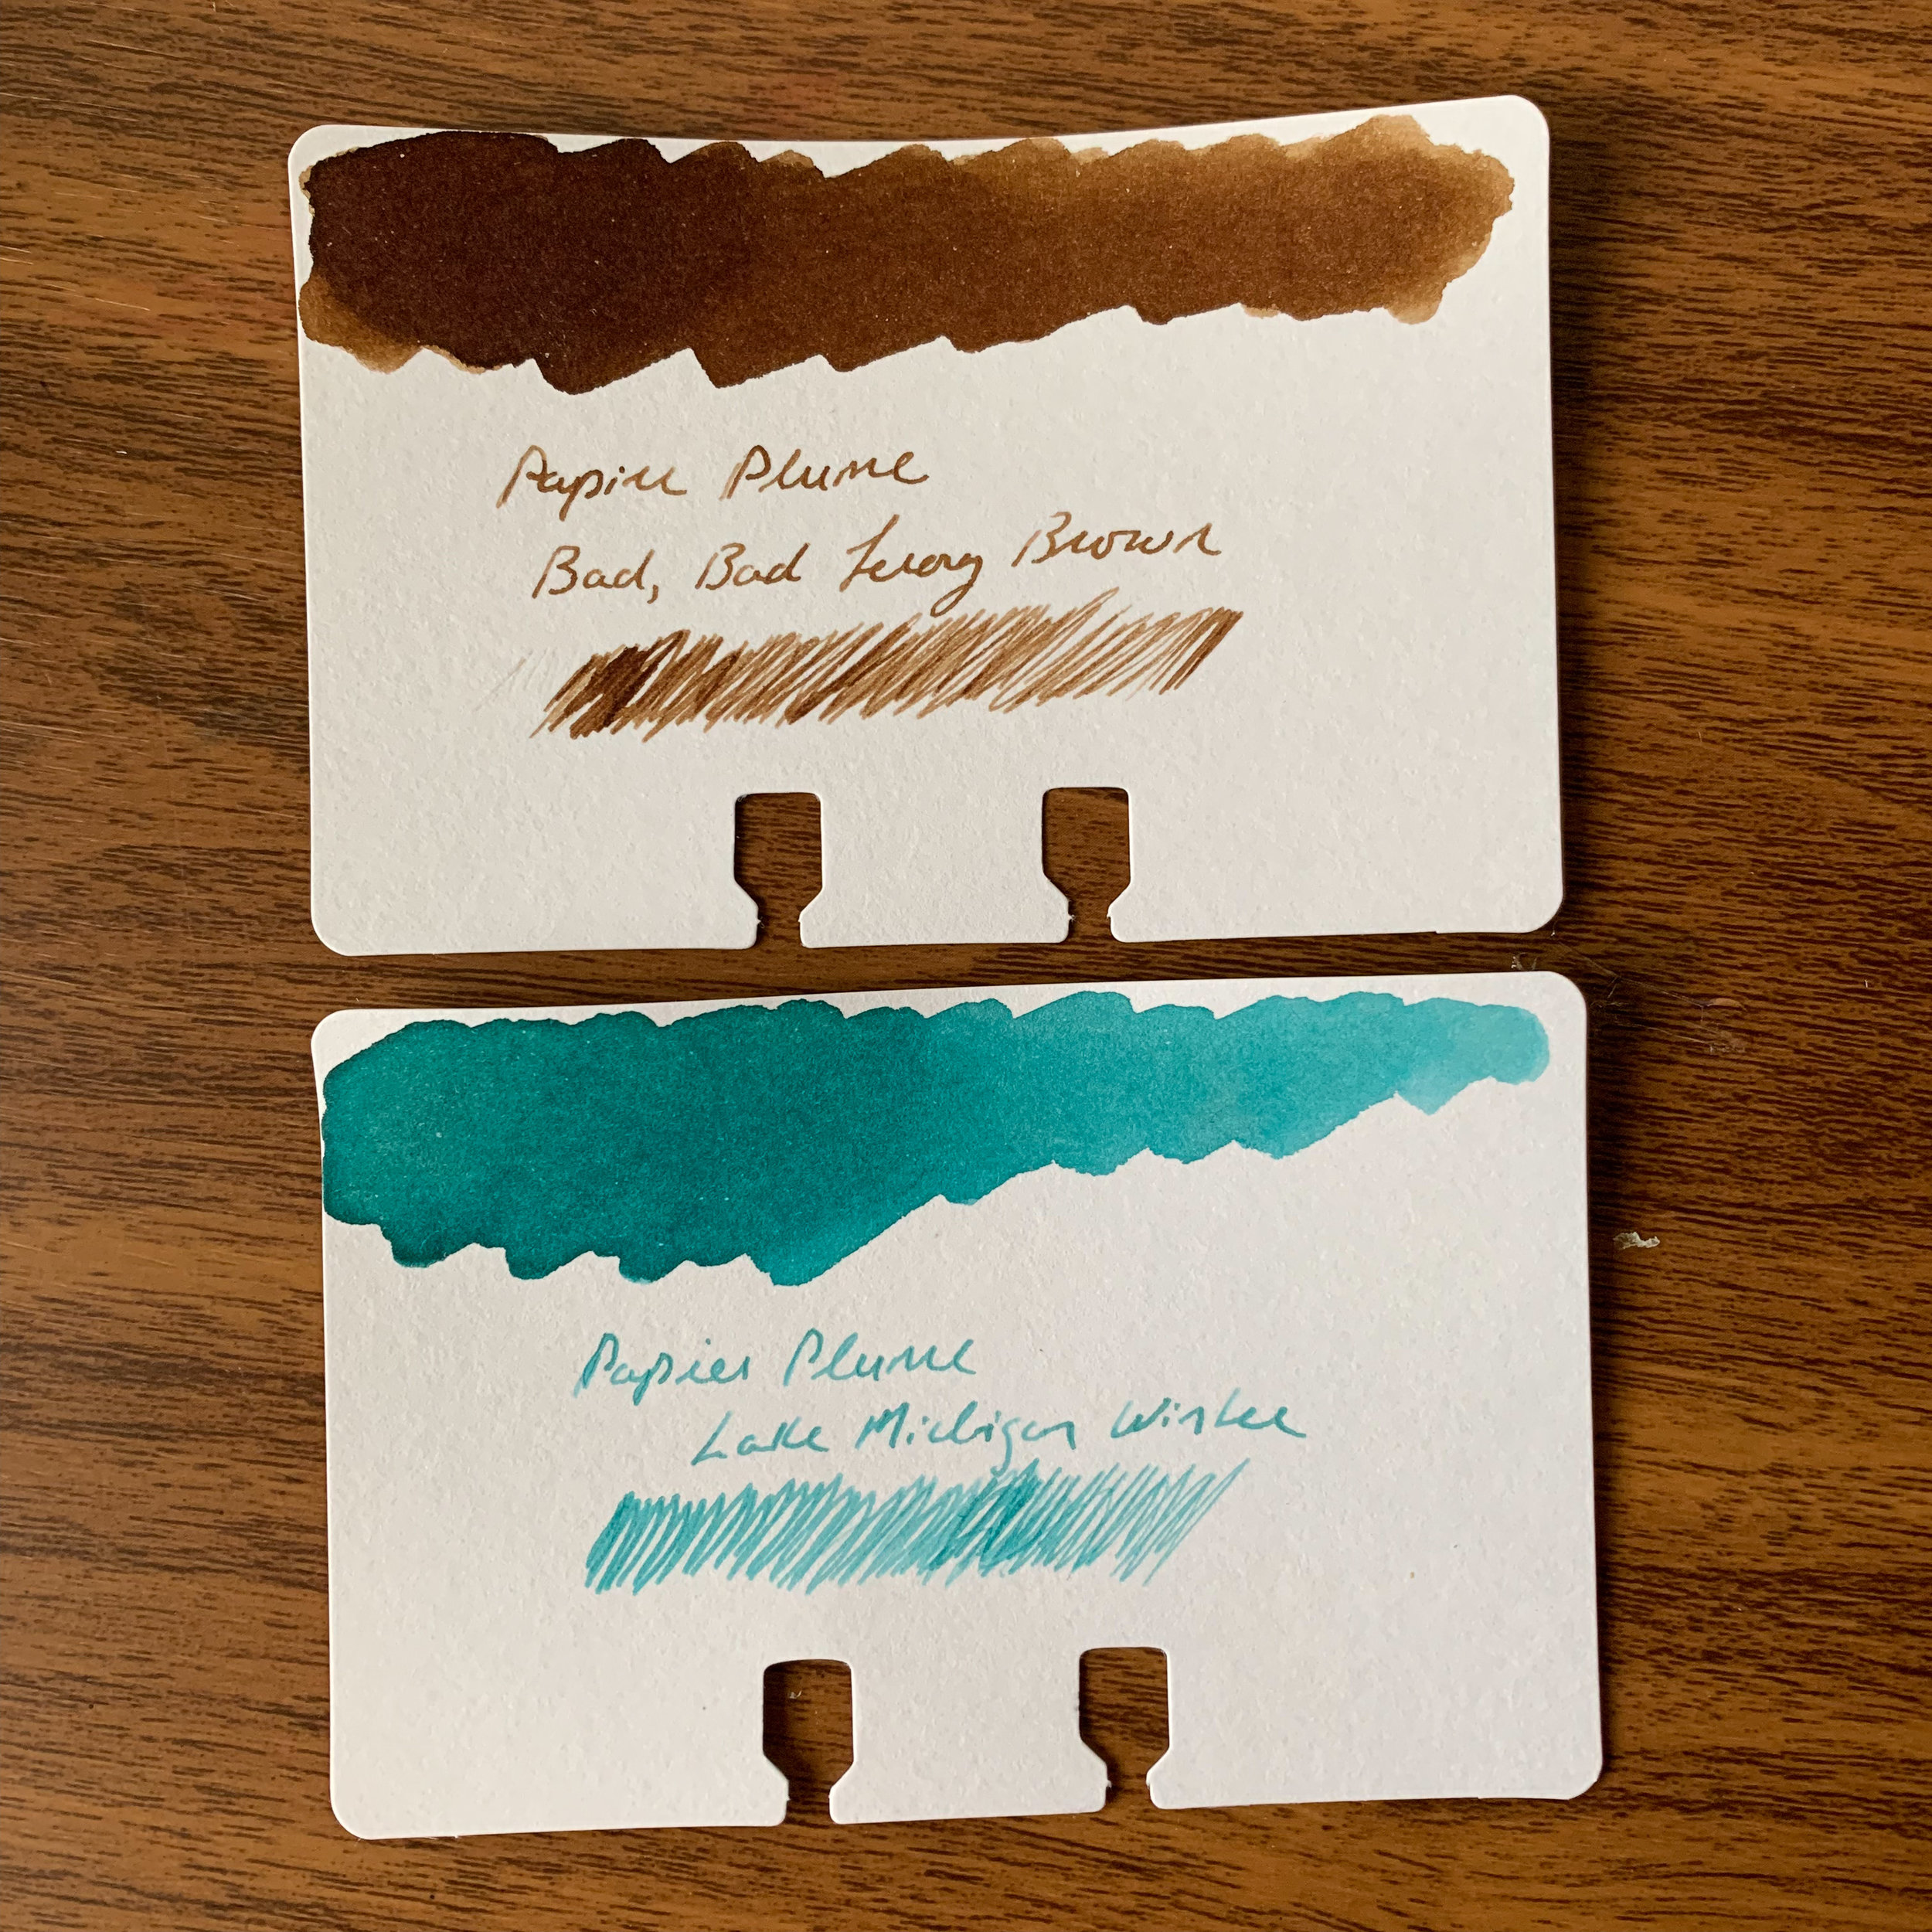 Papier-Plume-Leroy-Brown-Lake-Michigan-Winter-Writing-Sample